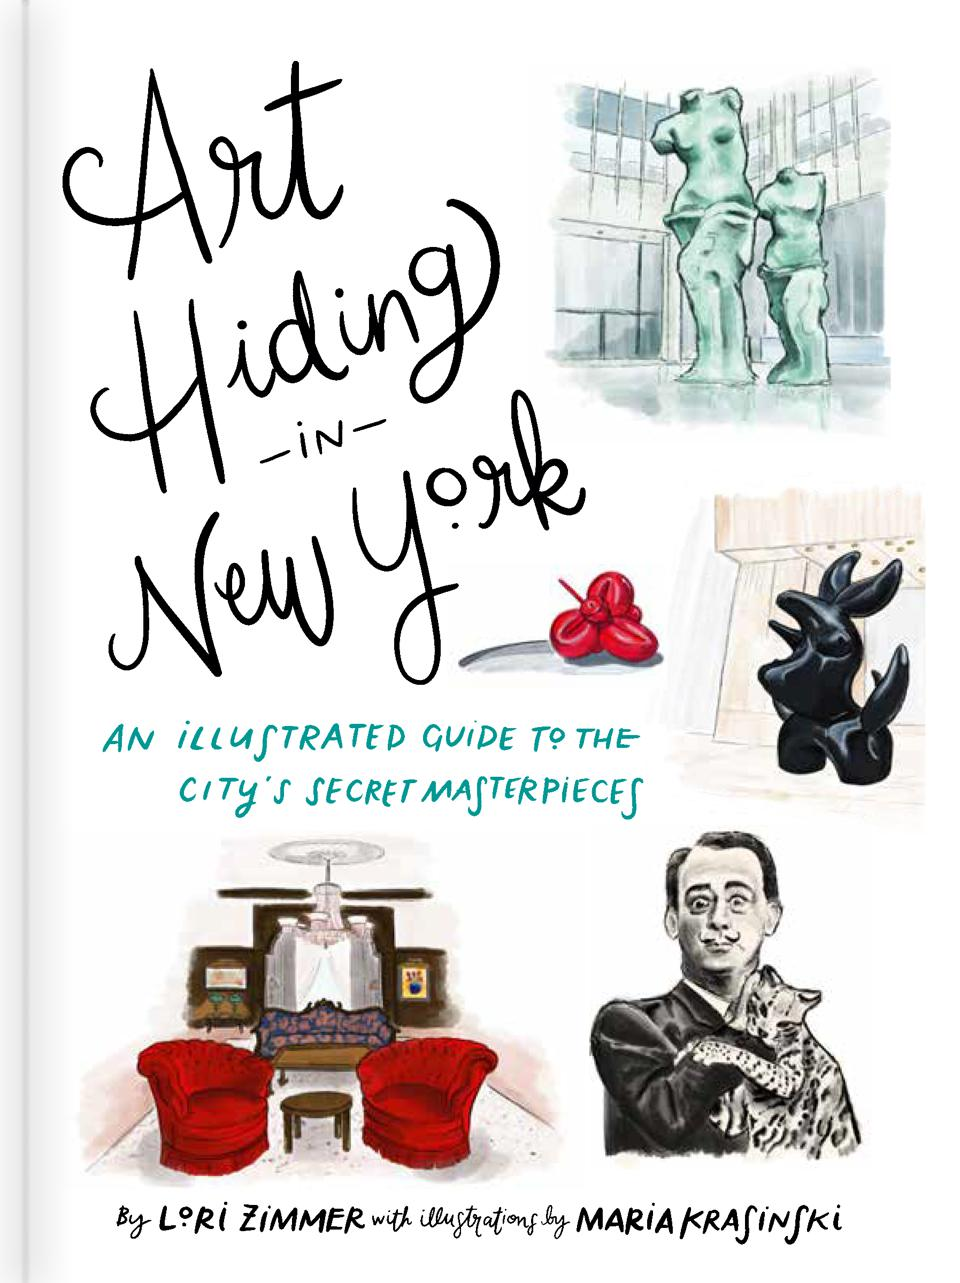 Lori Zimmer Art hiding in New York, New York public art book cover.